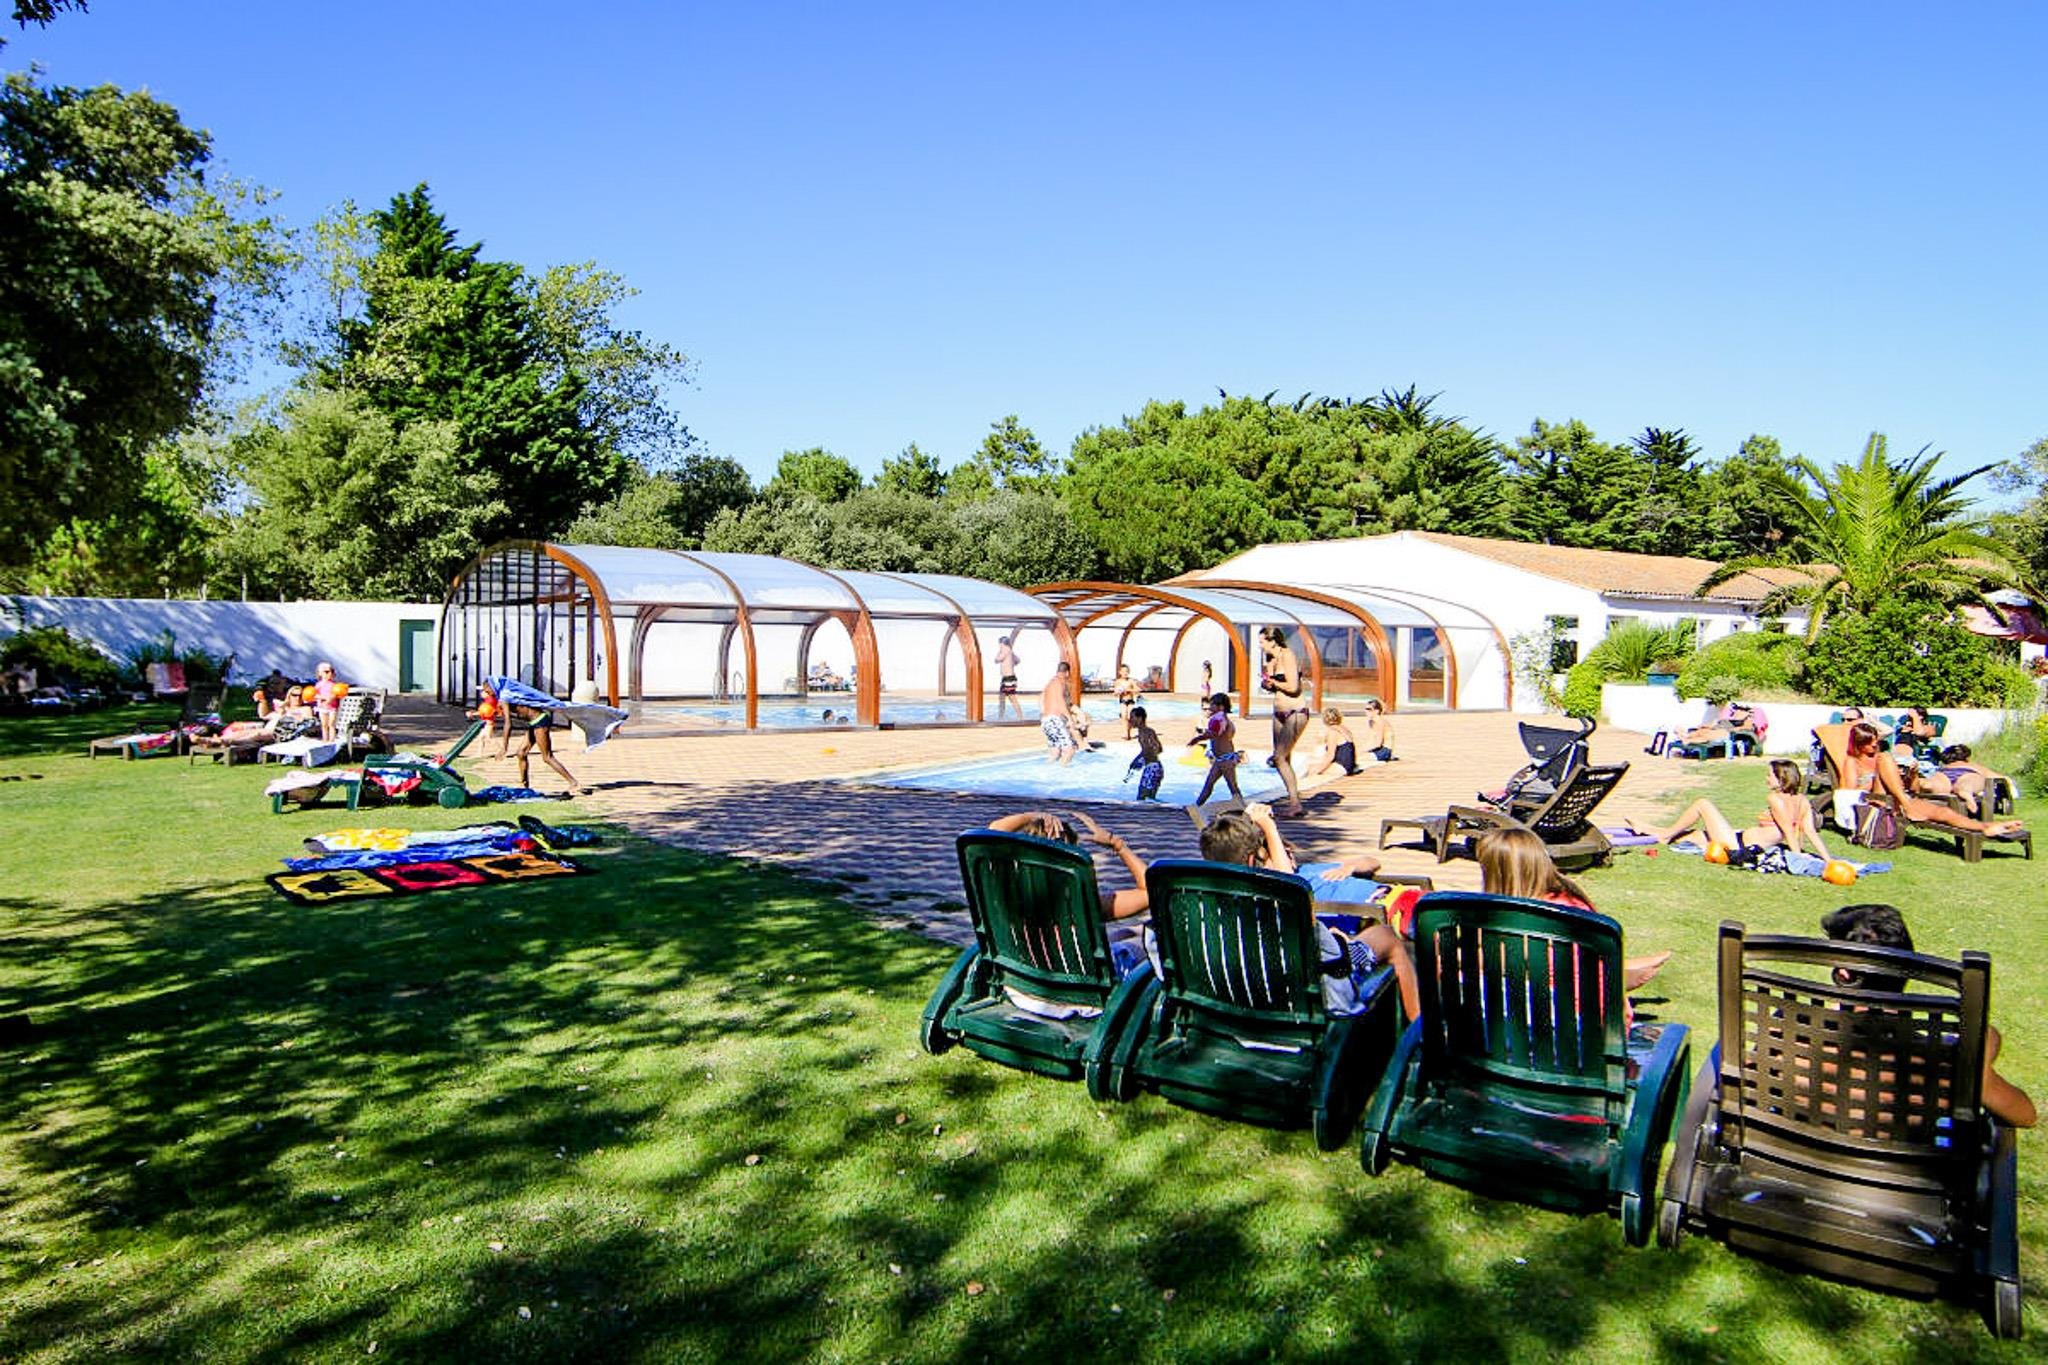 Establishment Camping L'ile Blanche - La Flotte En Re